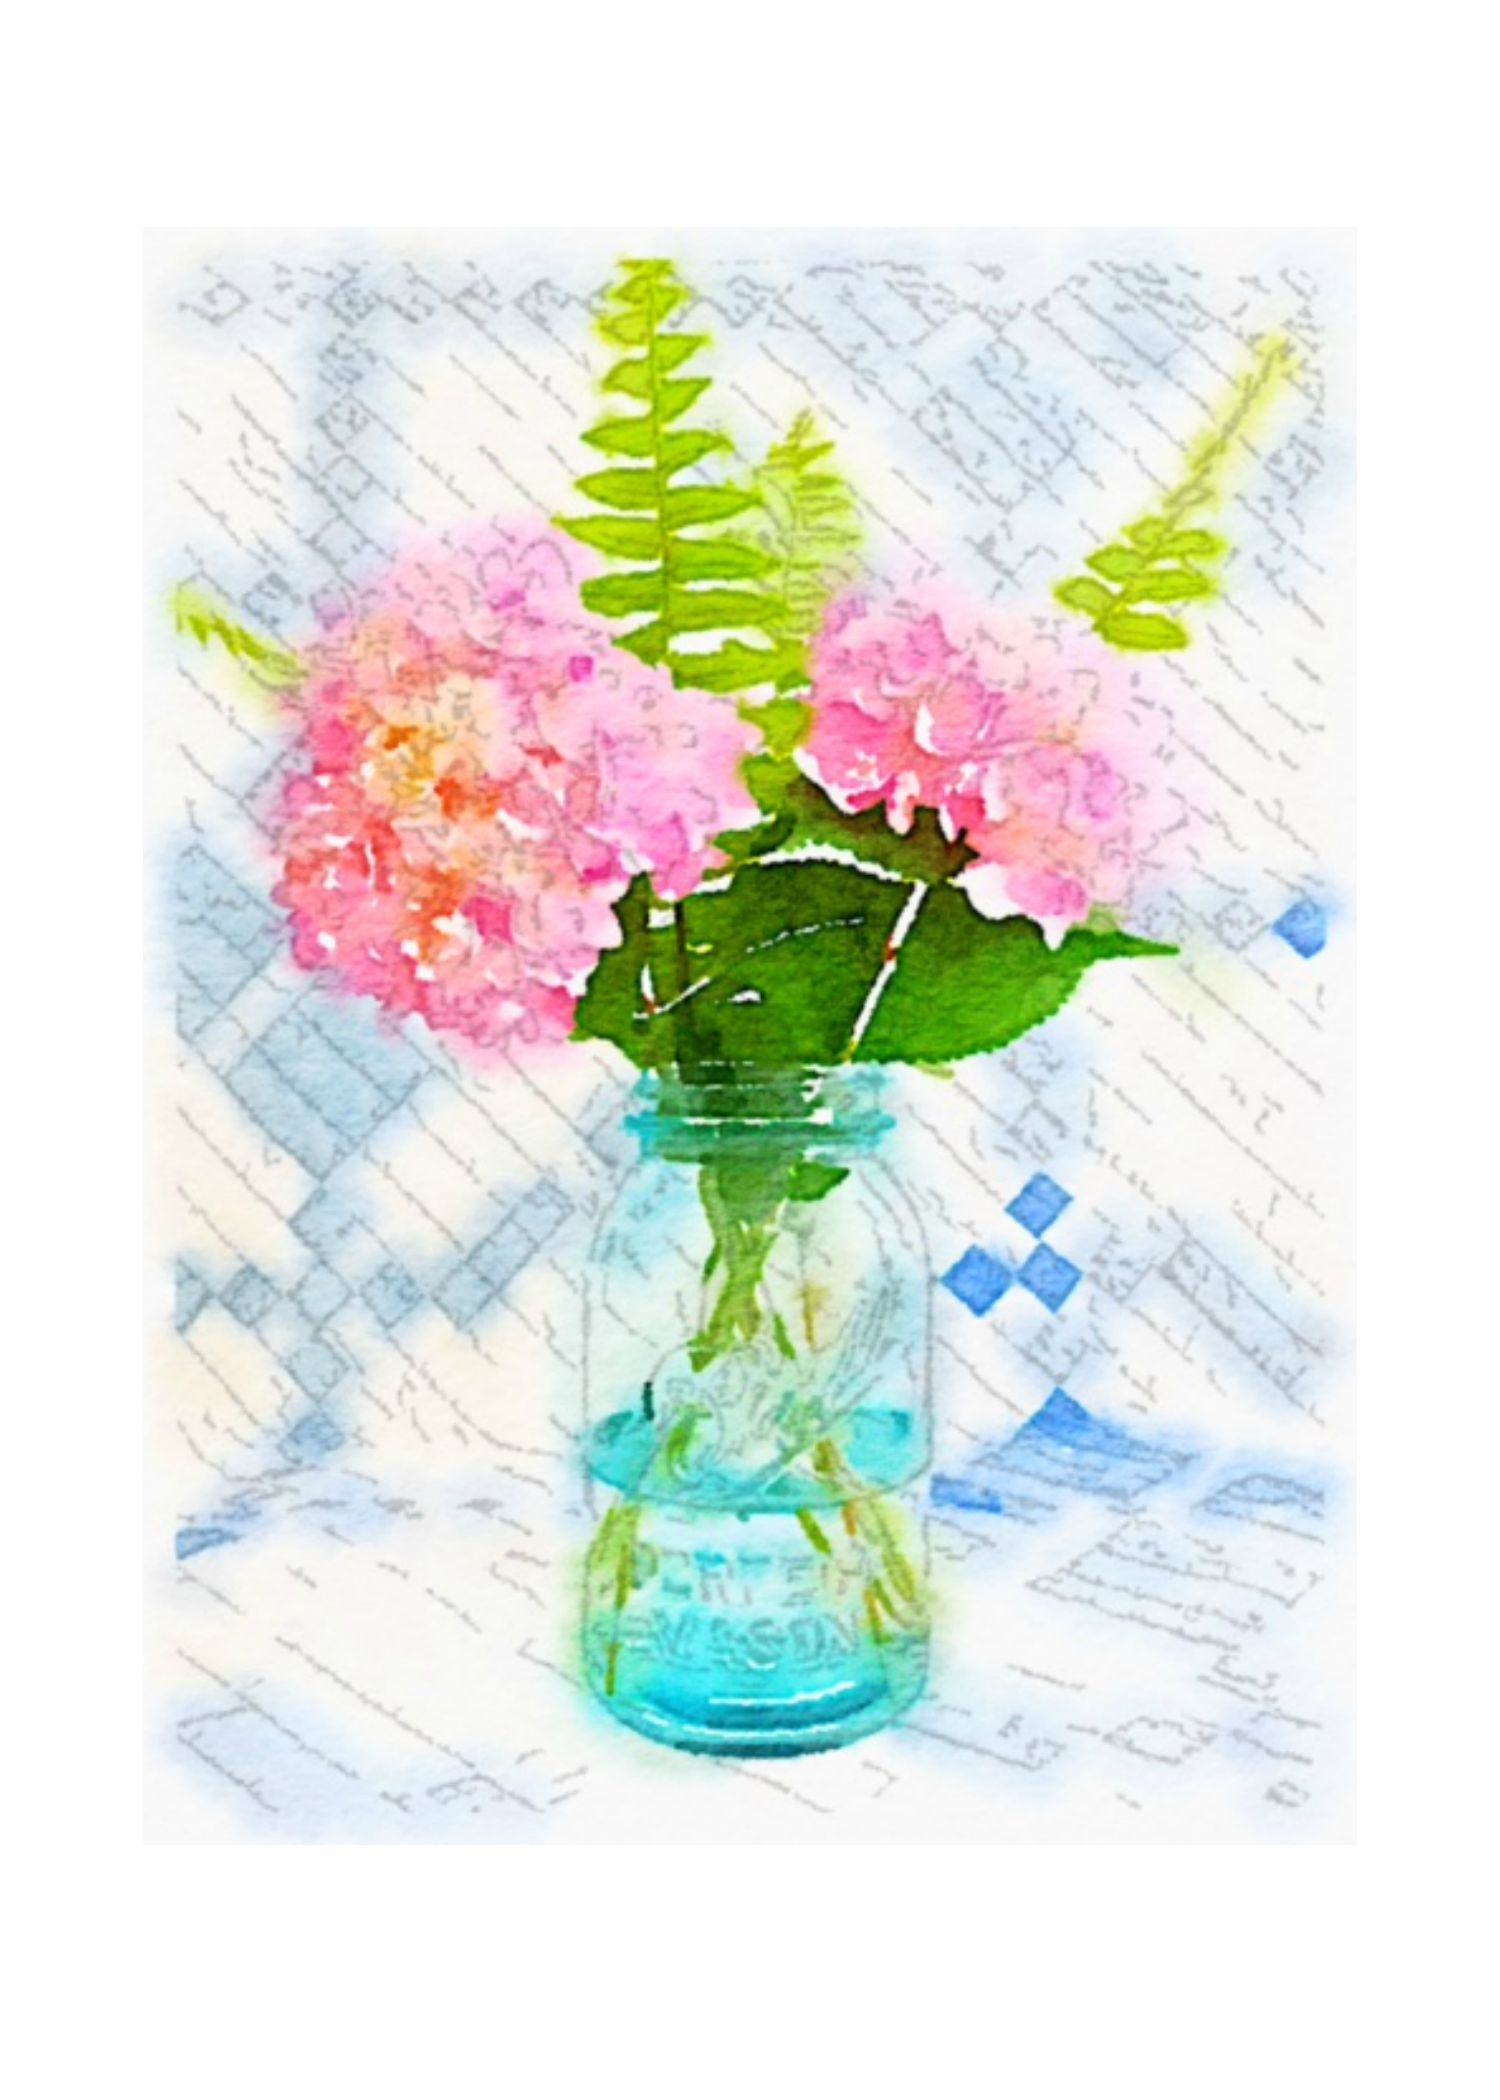 Free Summer Printables - Hydrangeas in Mason Jar Watercolor Print via On Sutton Place | https://www.roseclearfield.com